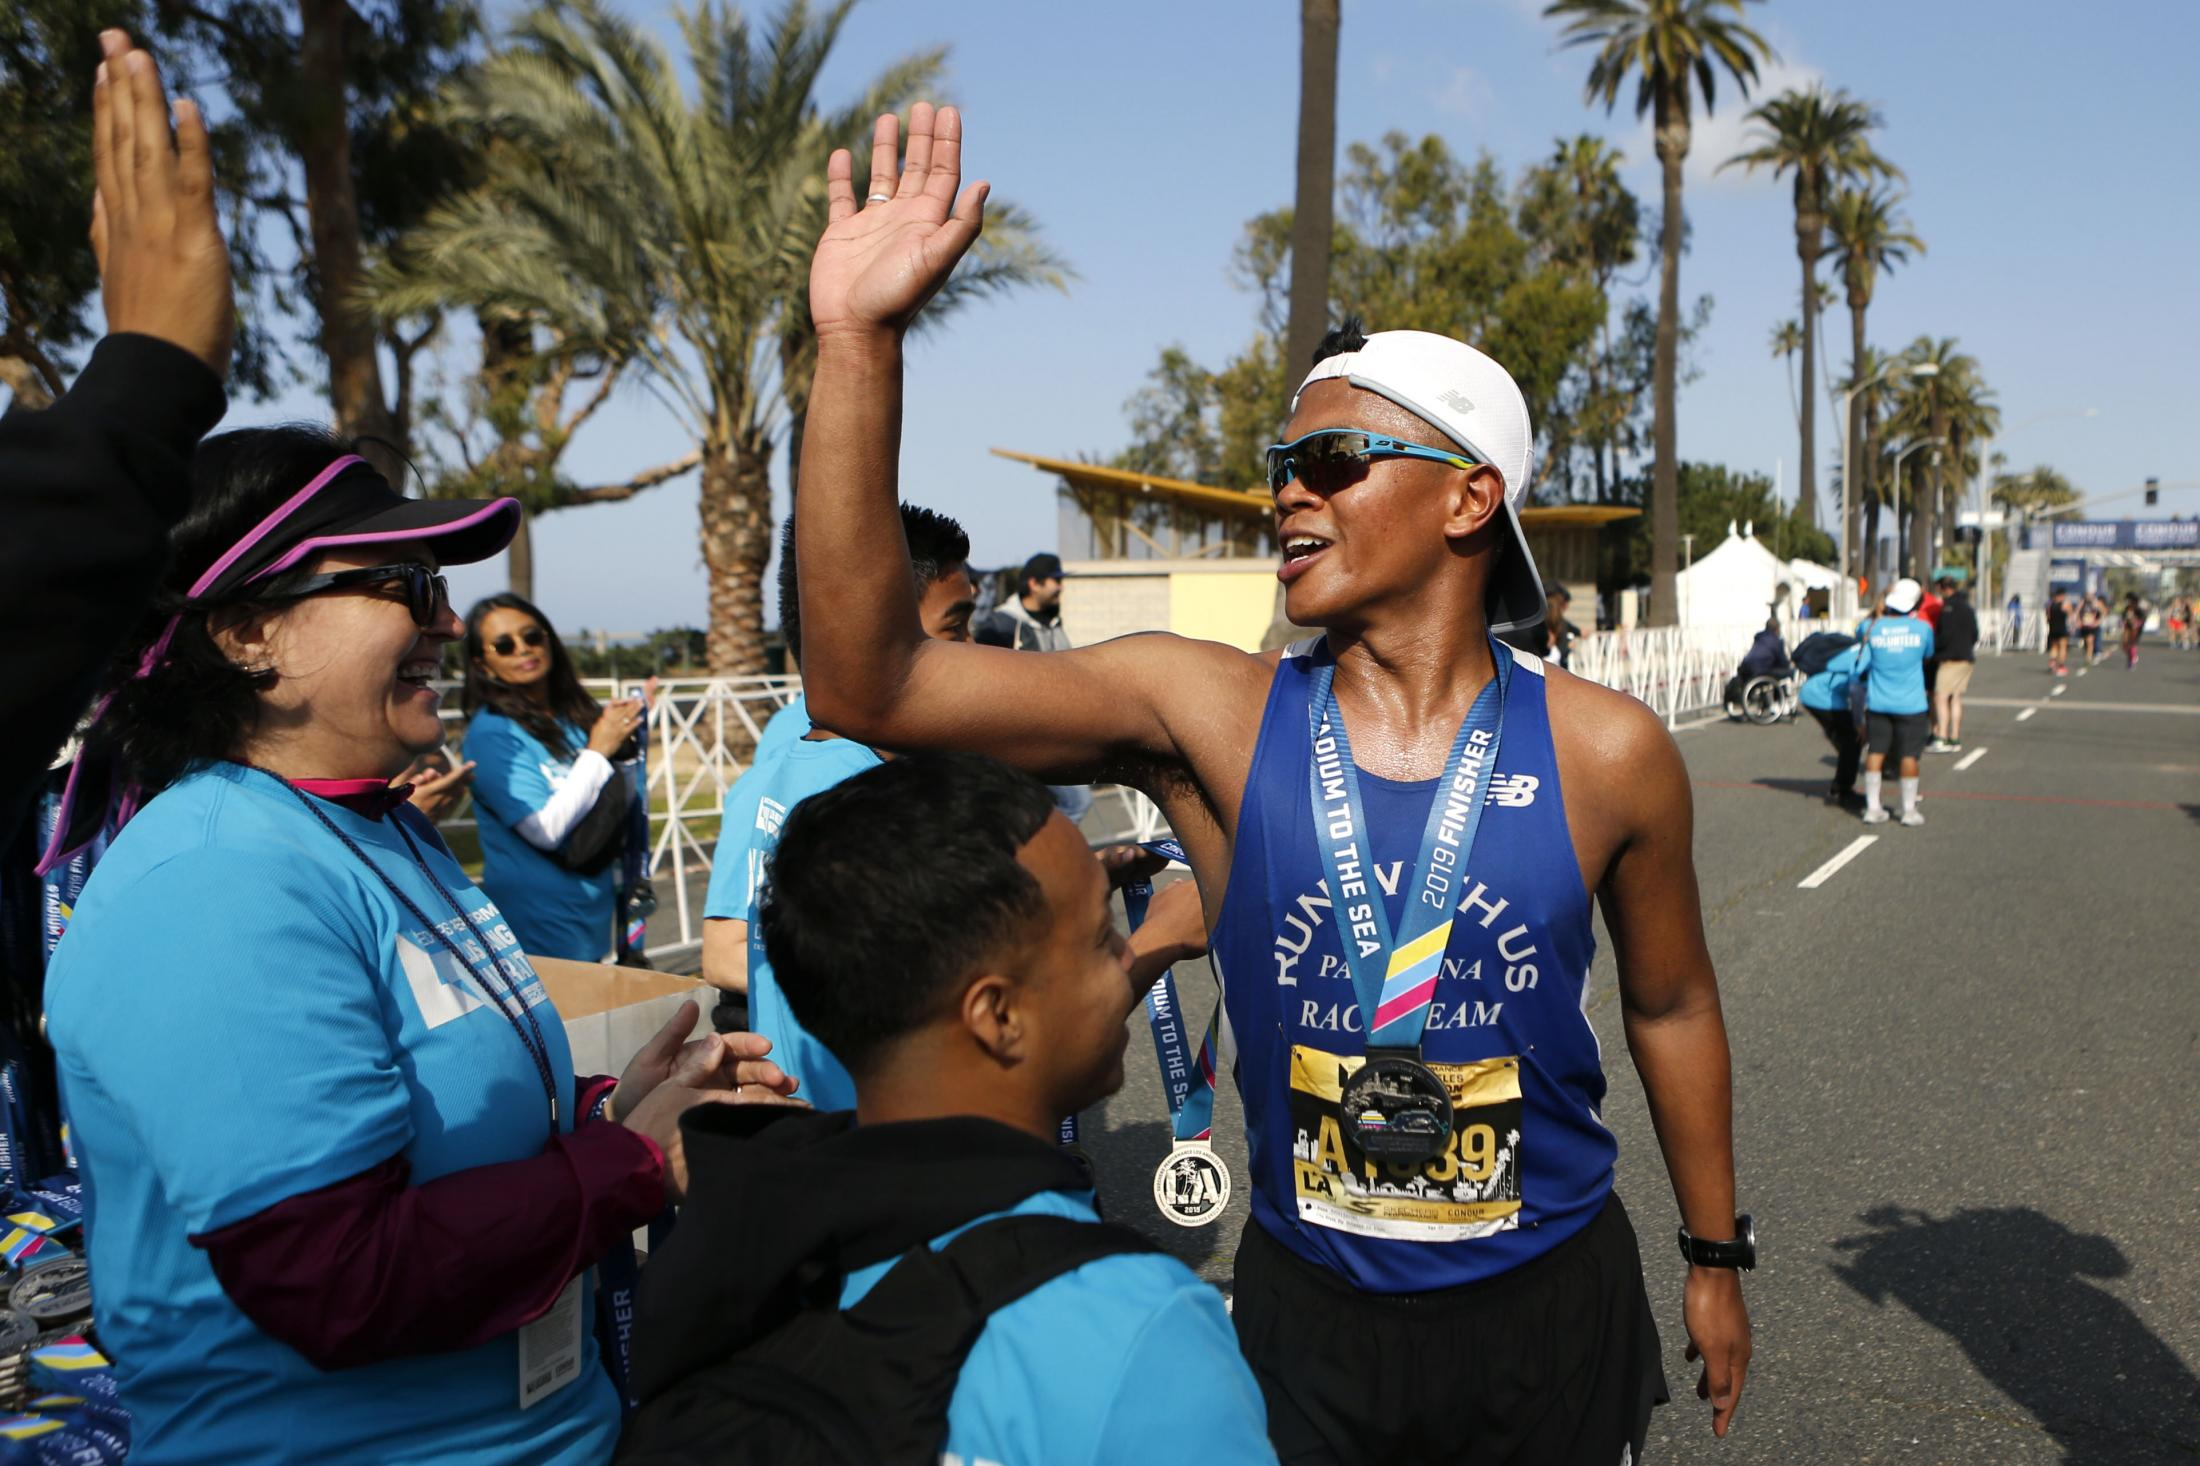 LOS ANGELES, CALIFORNIA - MARCH 24:  A runner high-fives volunteers after finishing the 2019 Skechers Performance Los Angeles Marathon on March 24, 2019 in Los Angeles, California. (Photo by Katharine Lotze/Getty Images)